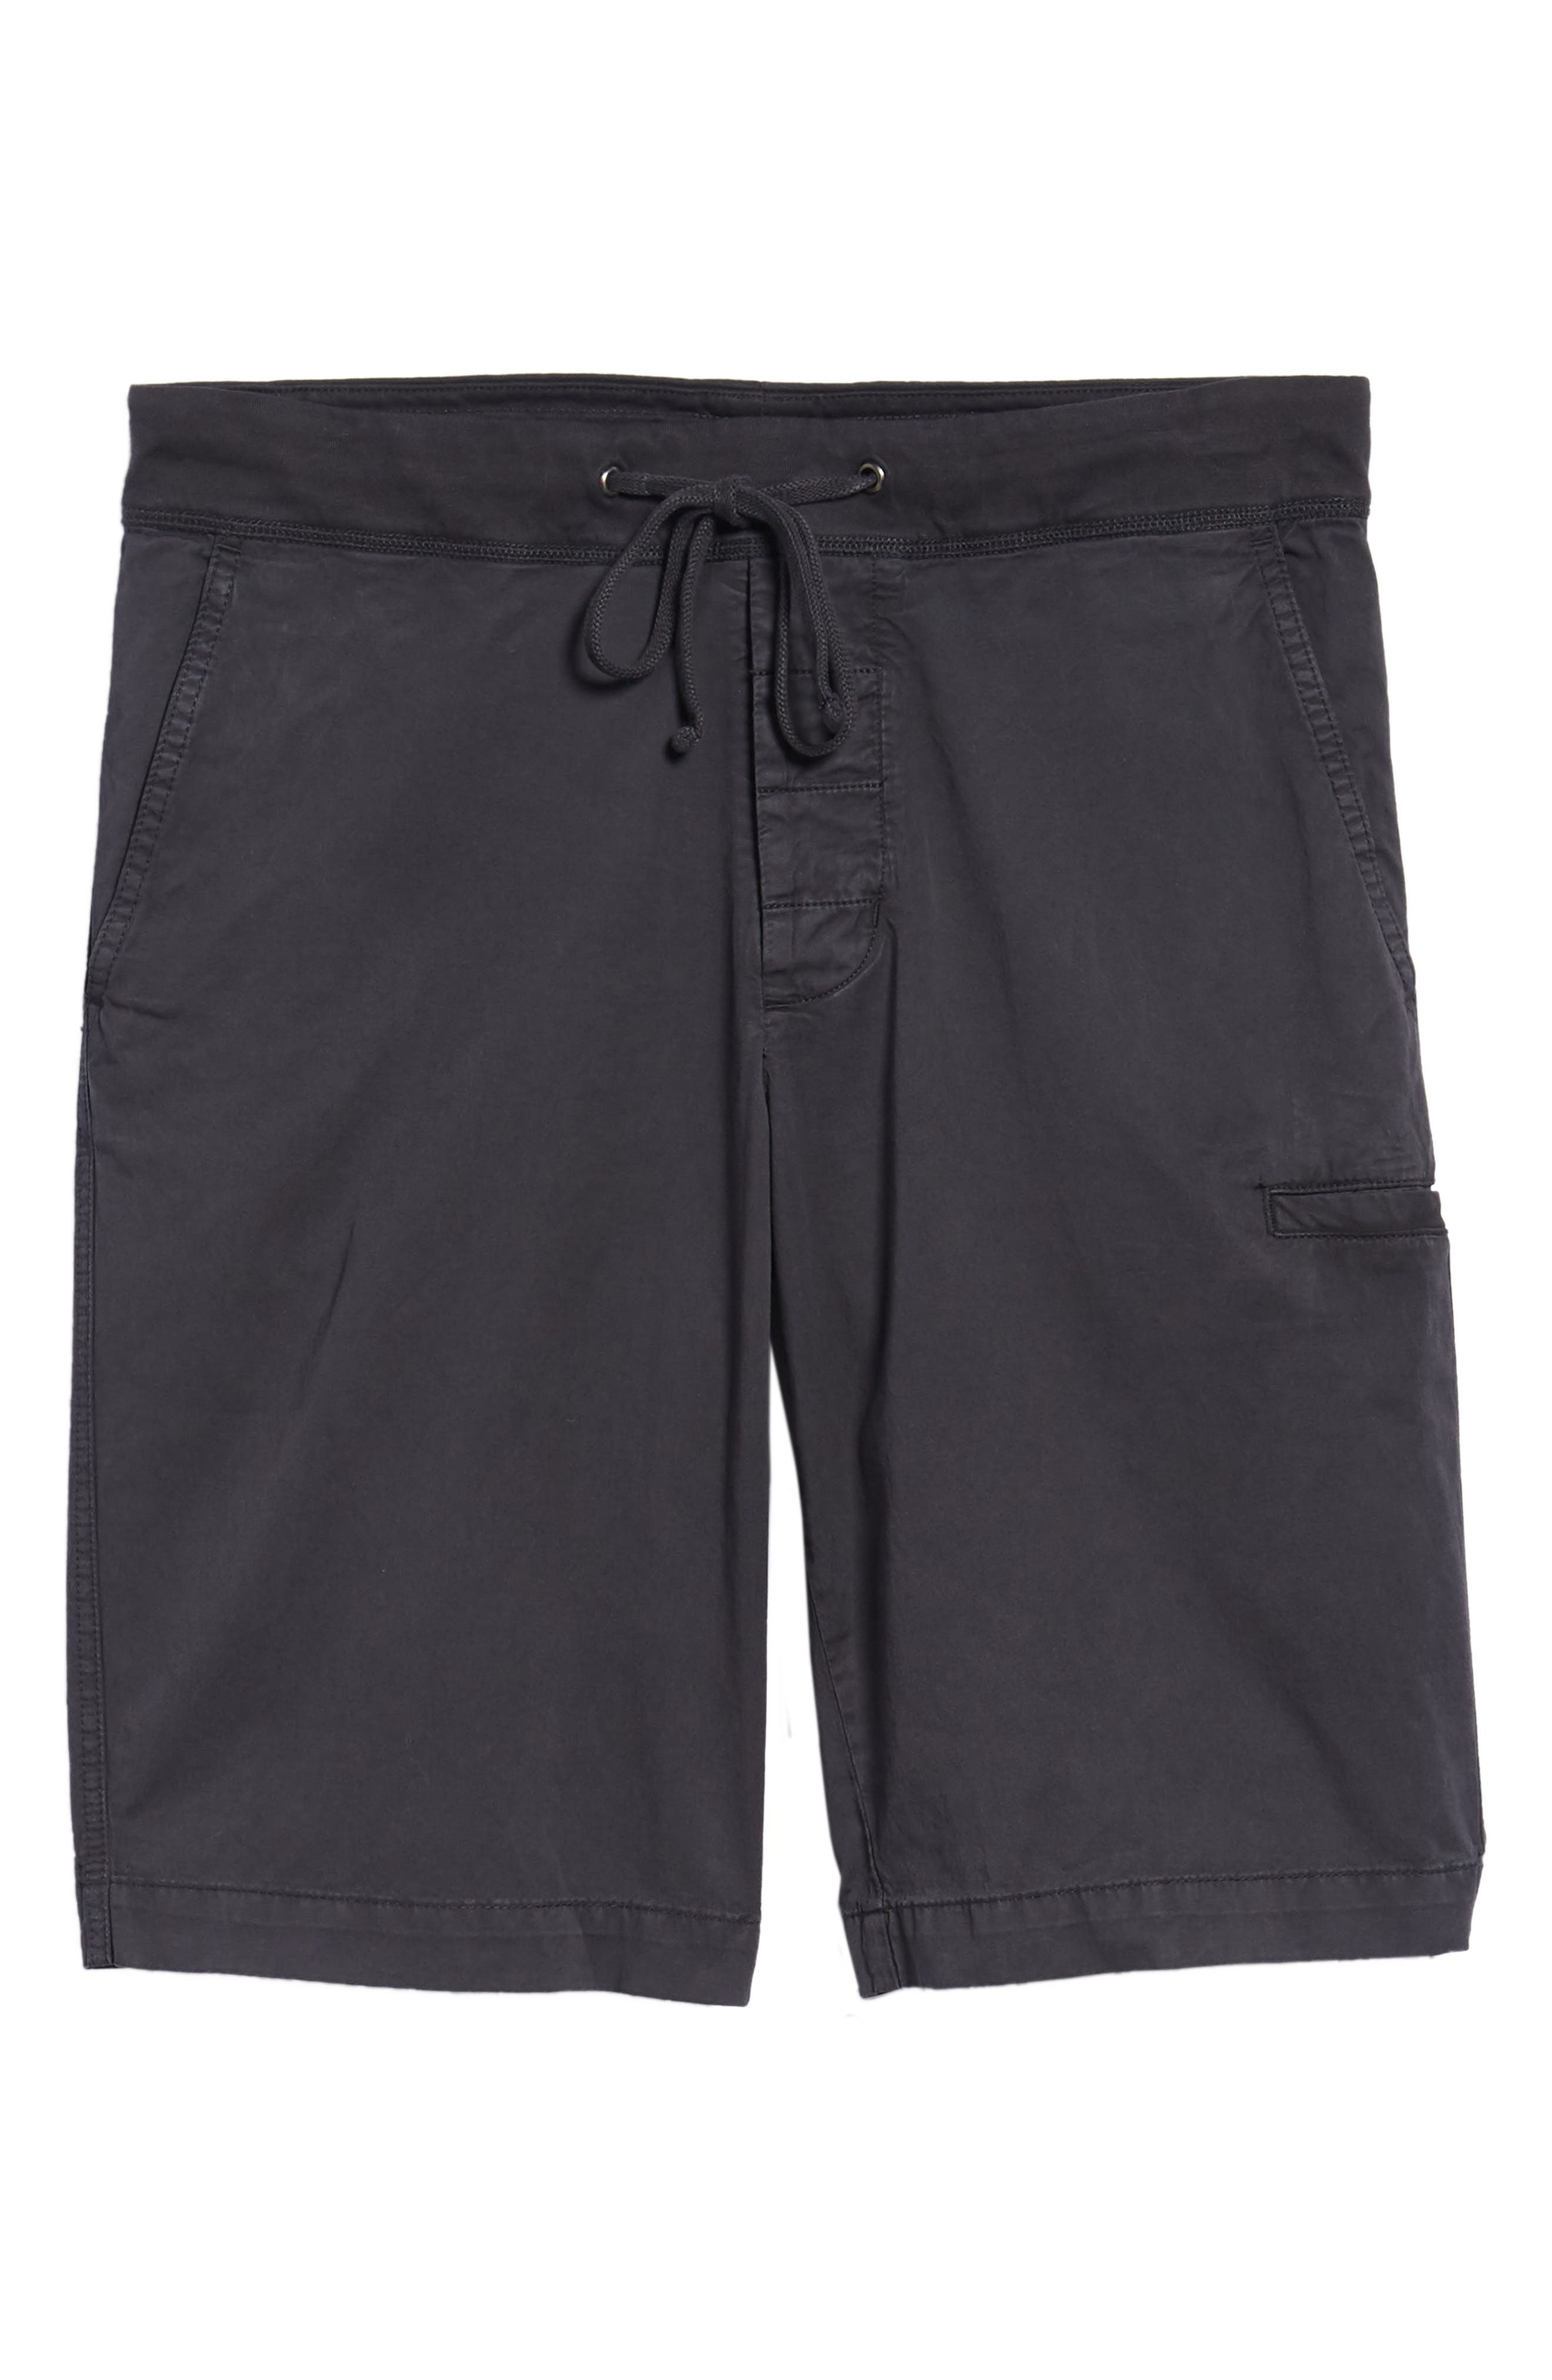 Surplus Relaxed Fit Shorts,                             Alternate thumbnail 6, color,                             023